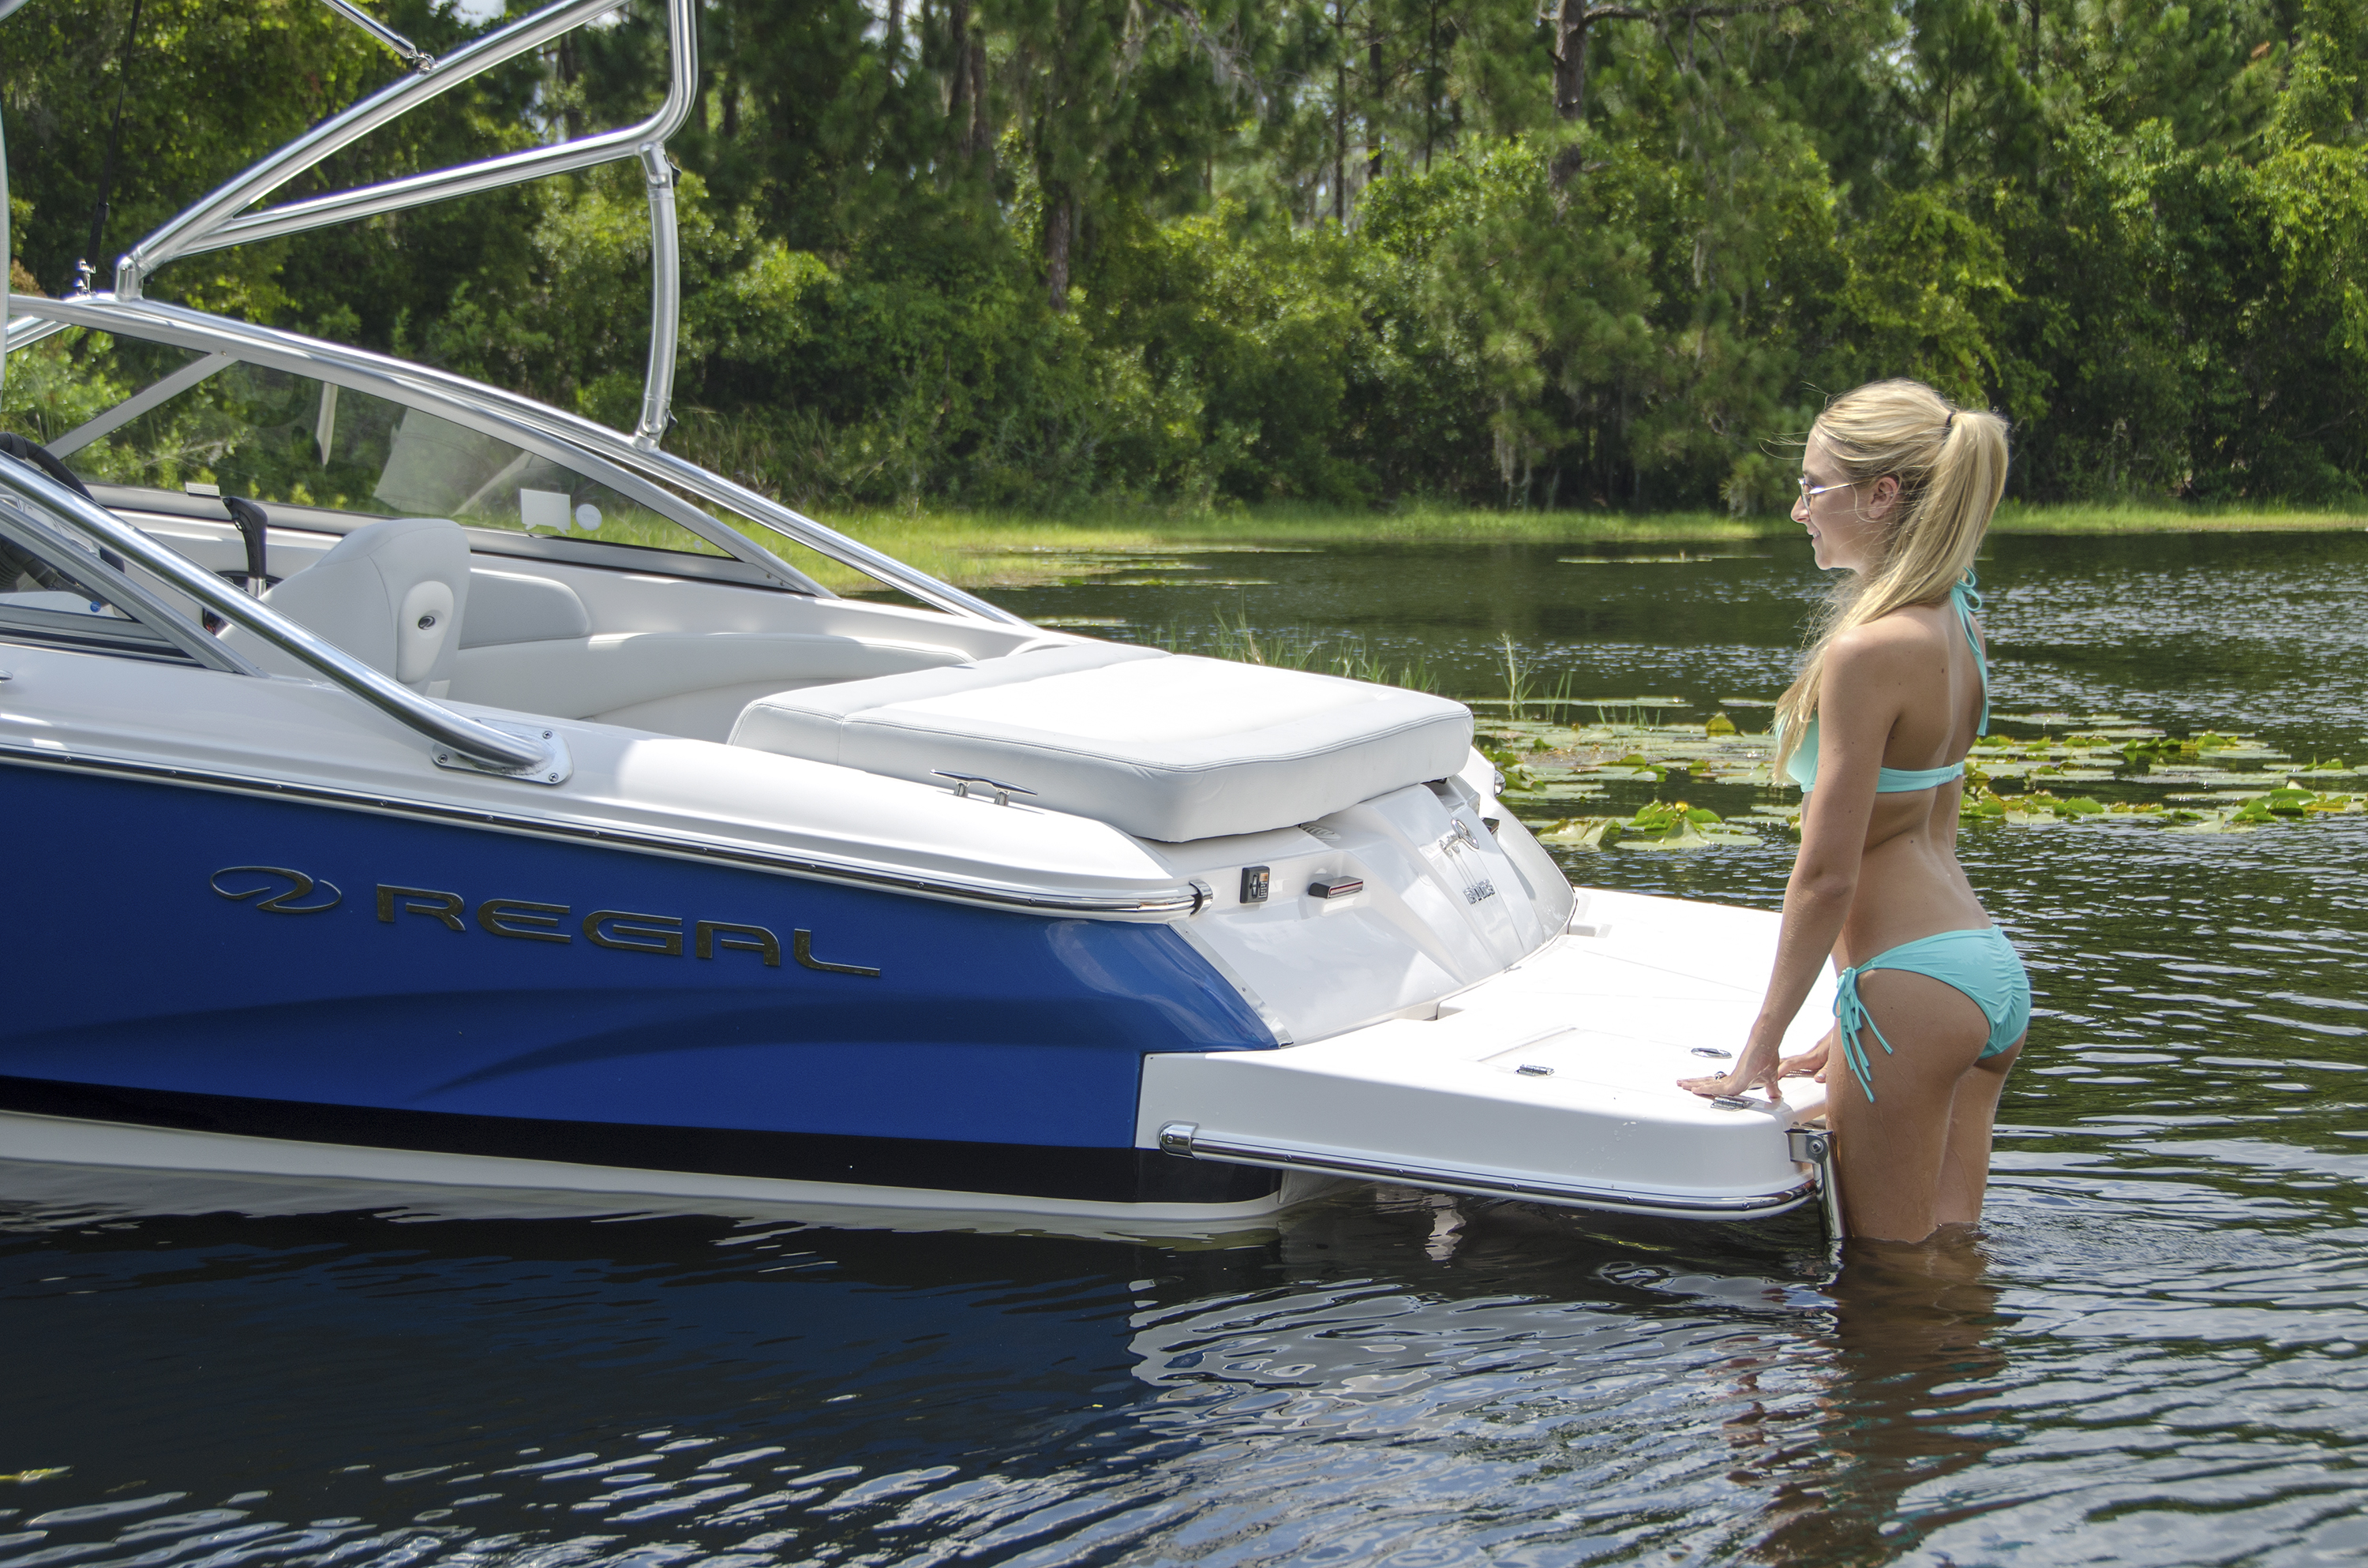 The swim platform ladder makes for easy access to the